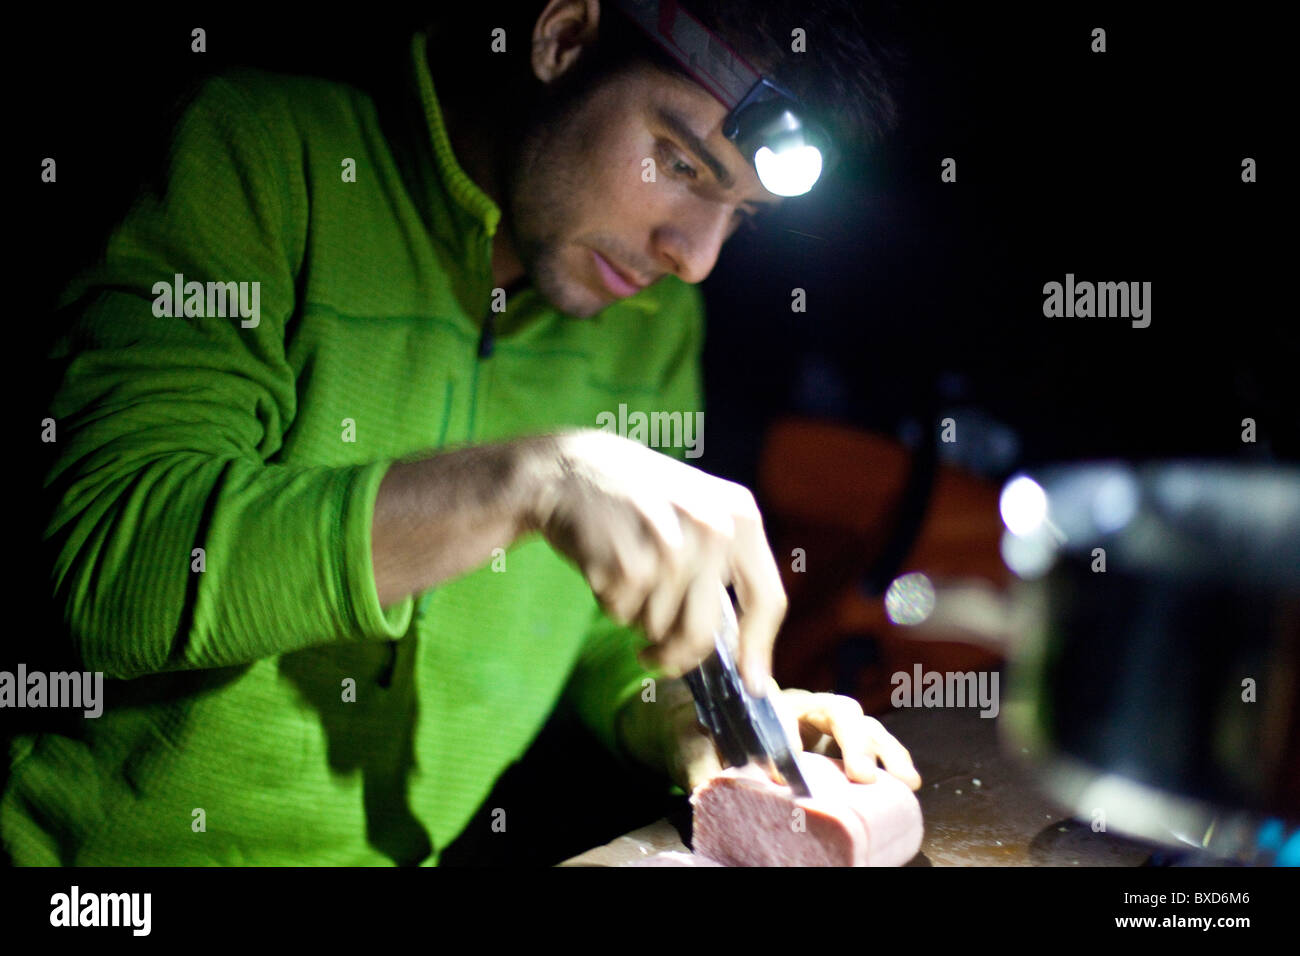 A man cuts up portions of meat for dinner in Three Rivers, California. - Stock Image